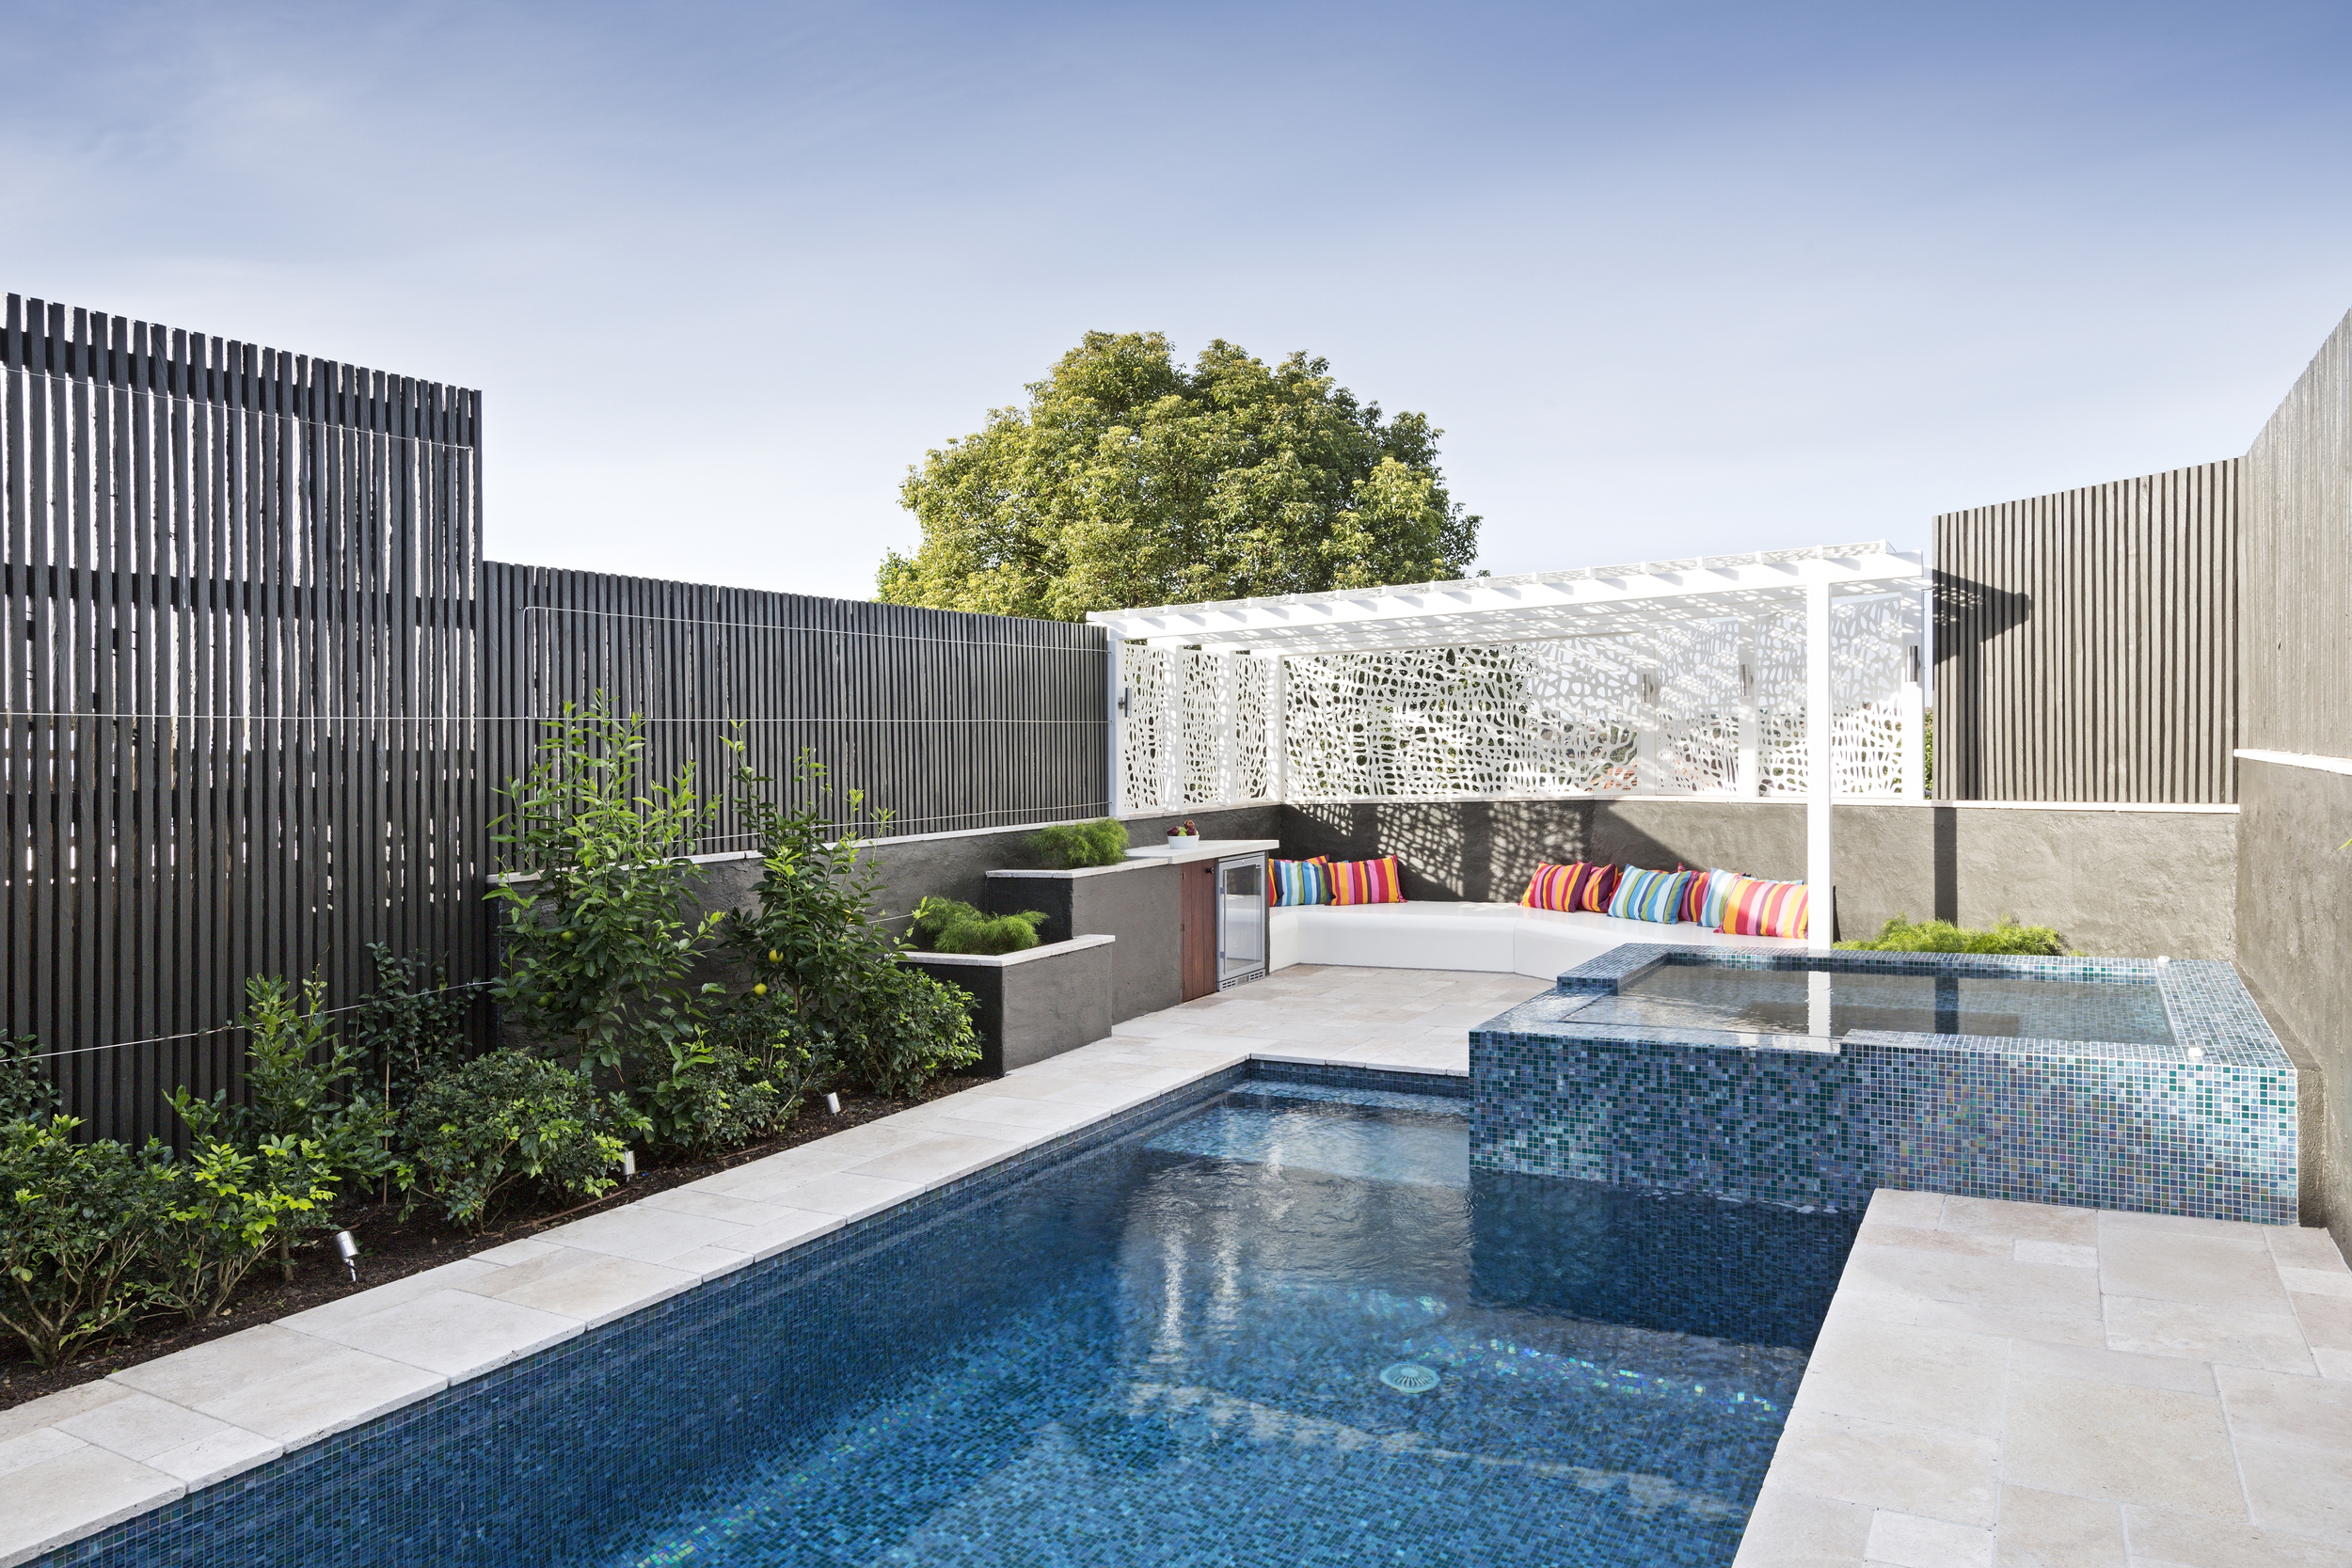 The spa keeps warm water flowing into the pool, giving it year-round use andappeal. A screen of timber battens gives privacy to the newly-elevated area from neighbours, and the powder-coasted steel arbour gives some dappled shade - its design is inspired by the water movement below.